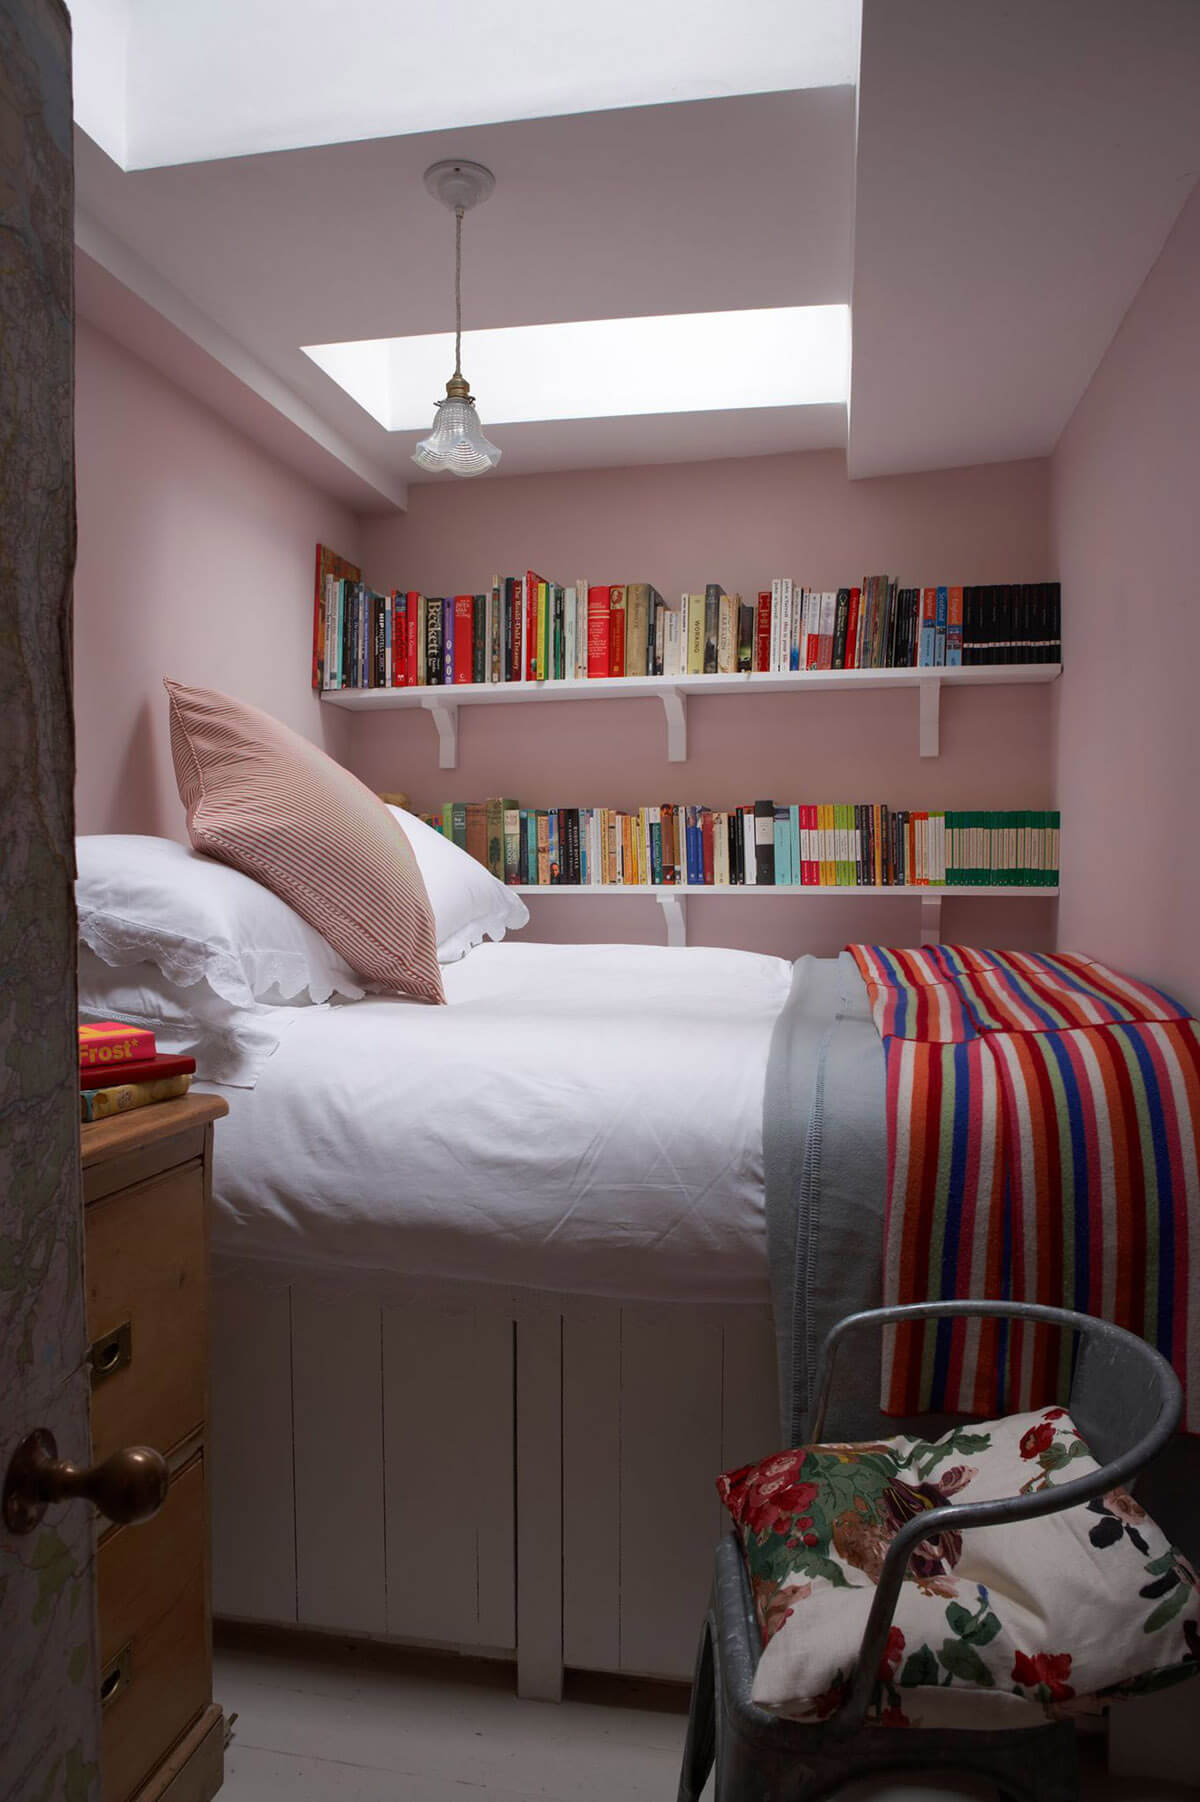 37 Best Small Bedroom Ideas and Designs for 2020 on Bedroom Ideas For Small Rooms  id=87555